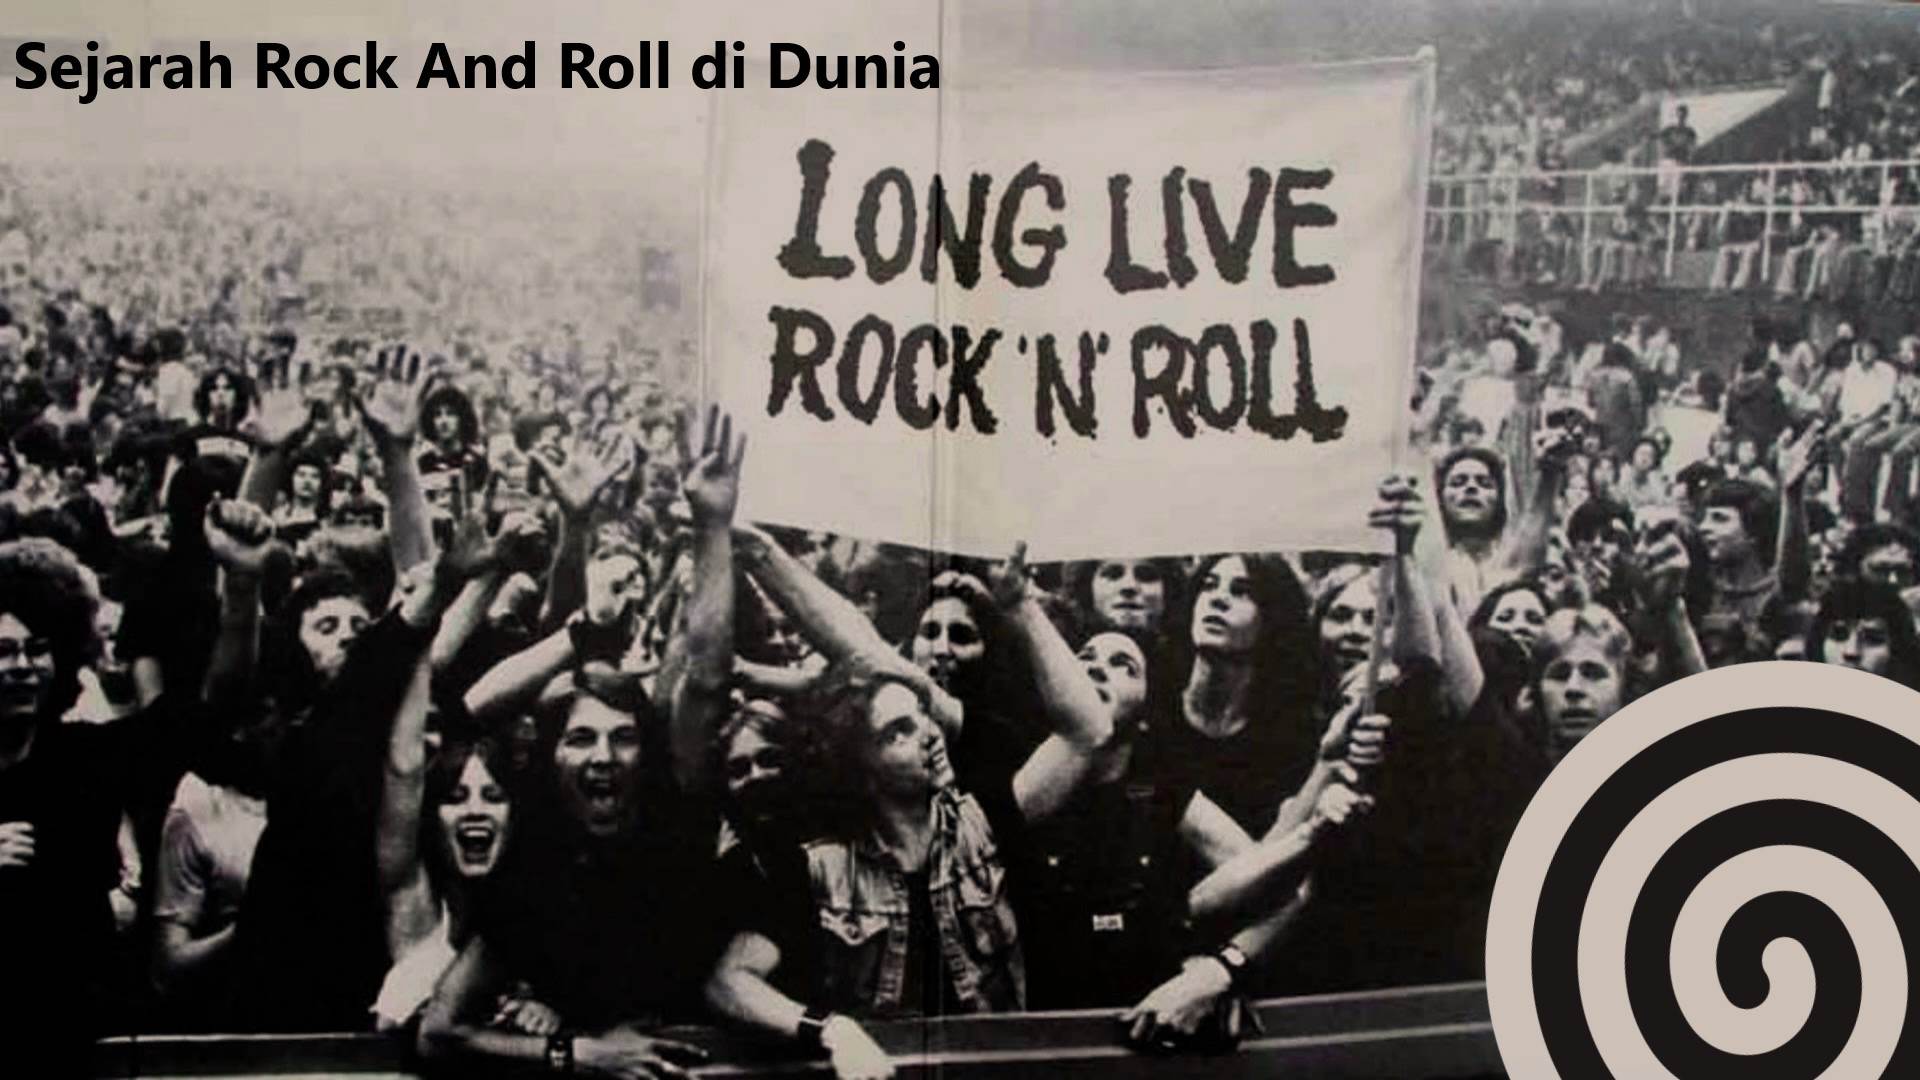 Sejarah Rock And Roll di Dunia